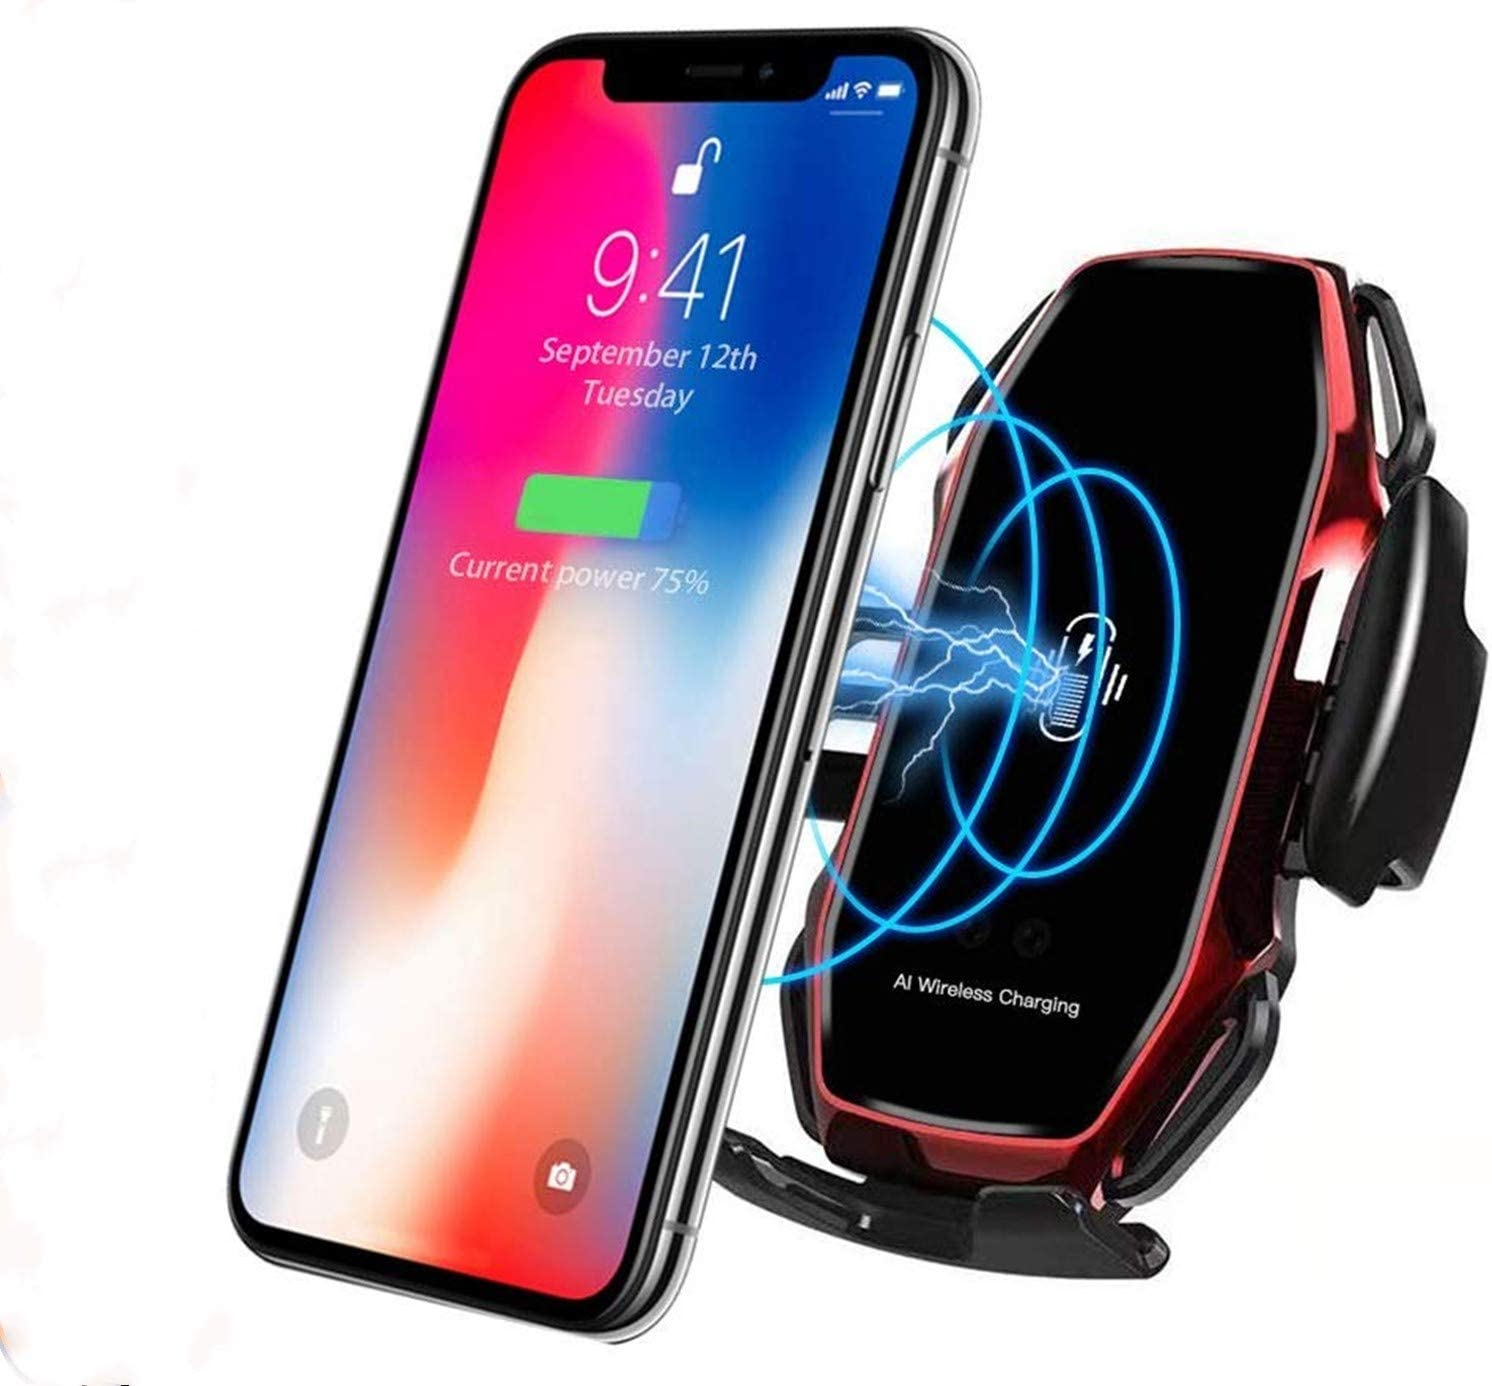 Wireless Fast Car Charger10W for Android iOS Smartphone Mobile Phone Fast Charging with Smart Sensor Car Mount Fast Charger for iPhone Xs Max/XR/X/8/8Plus Samsung S10/S9/S8-Red